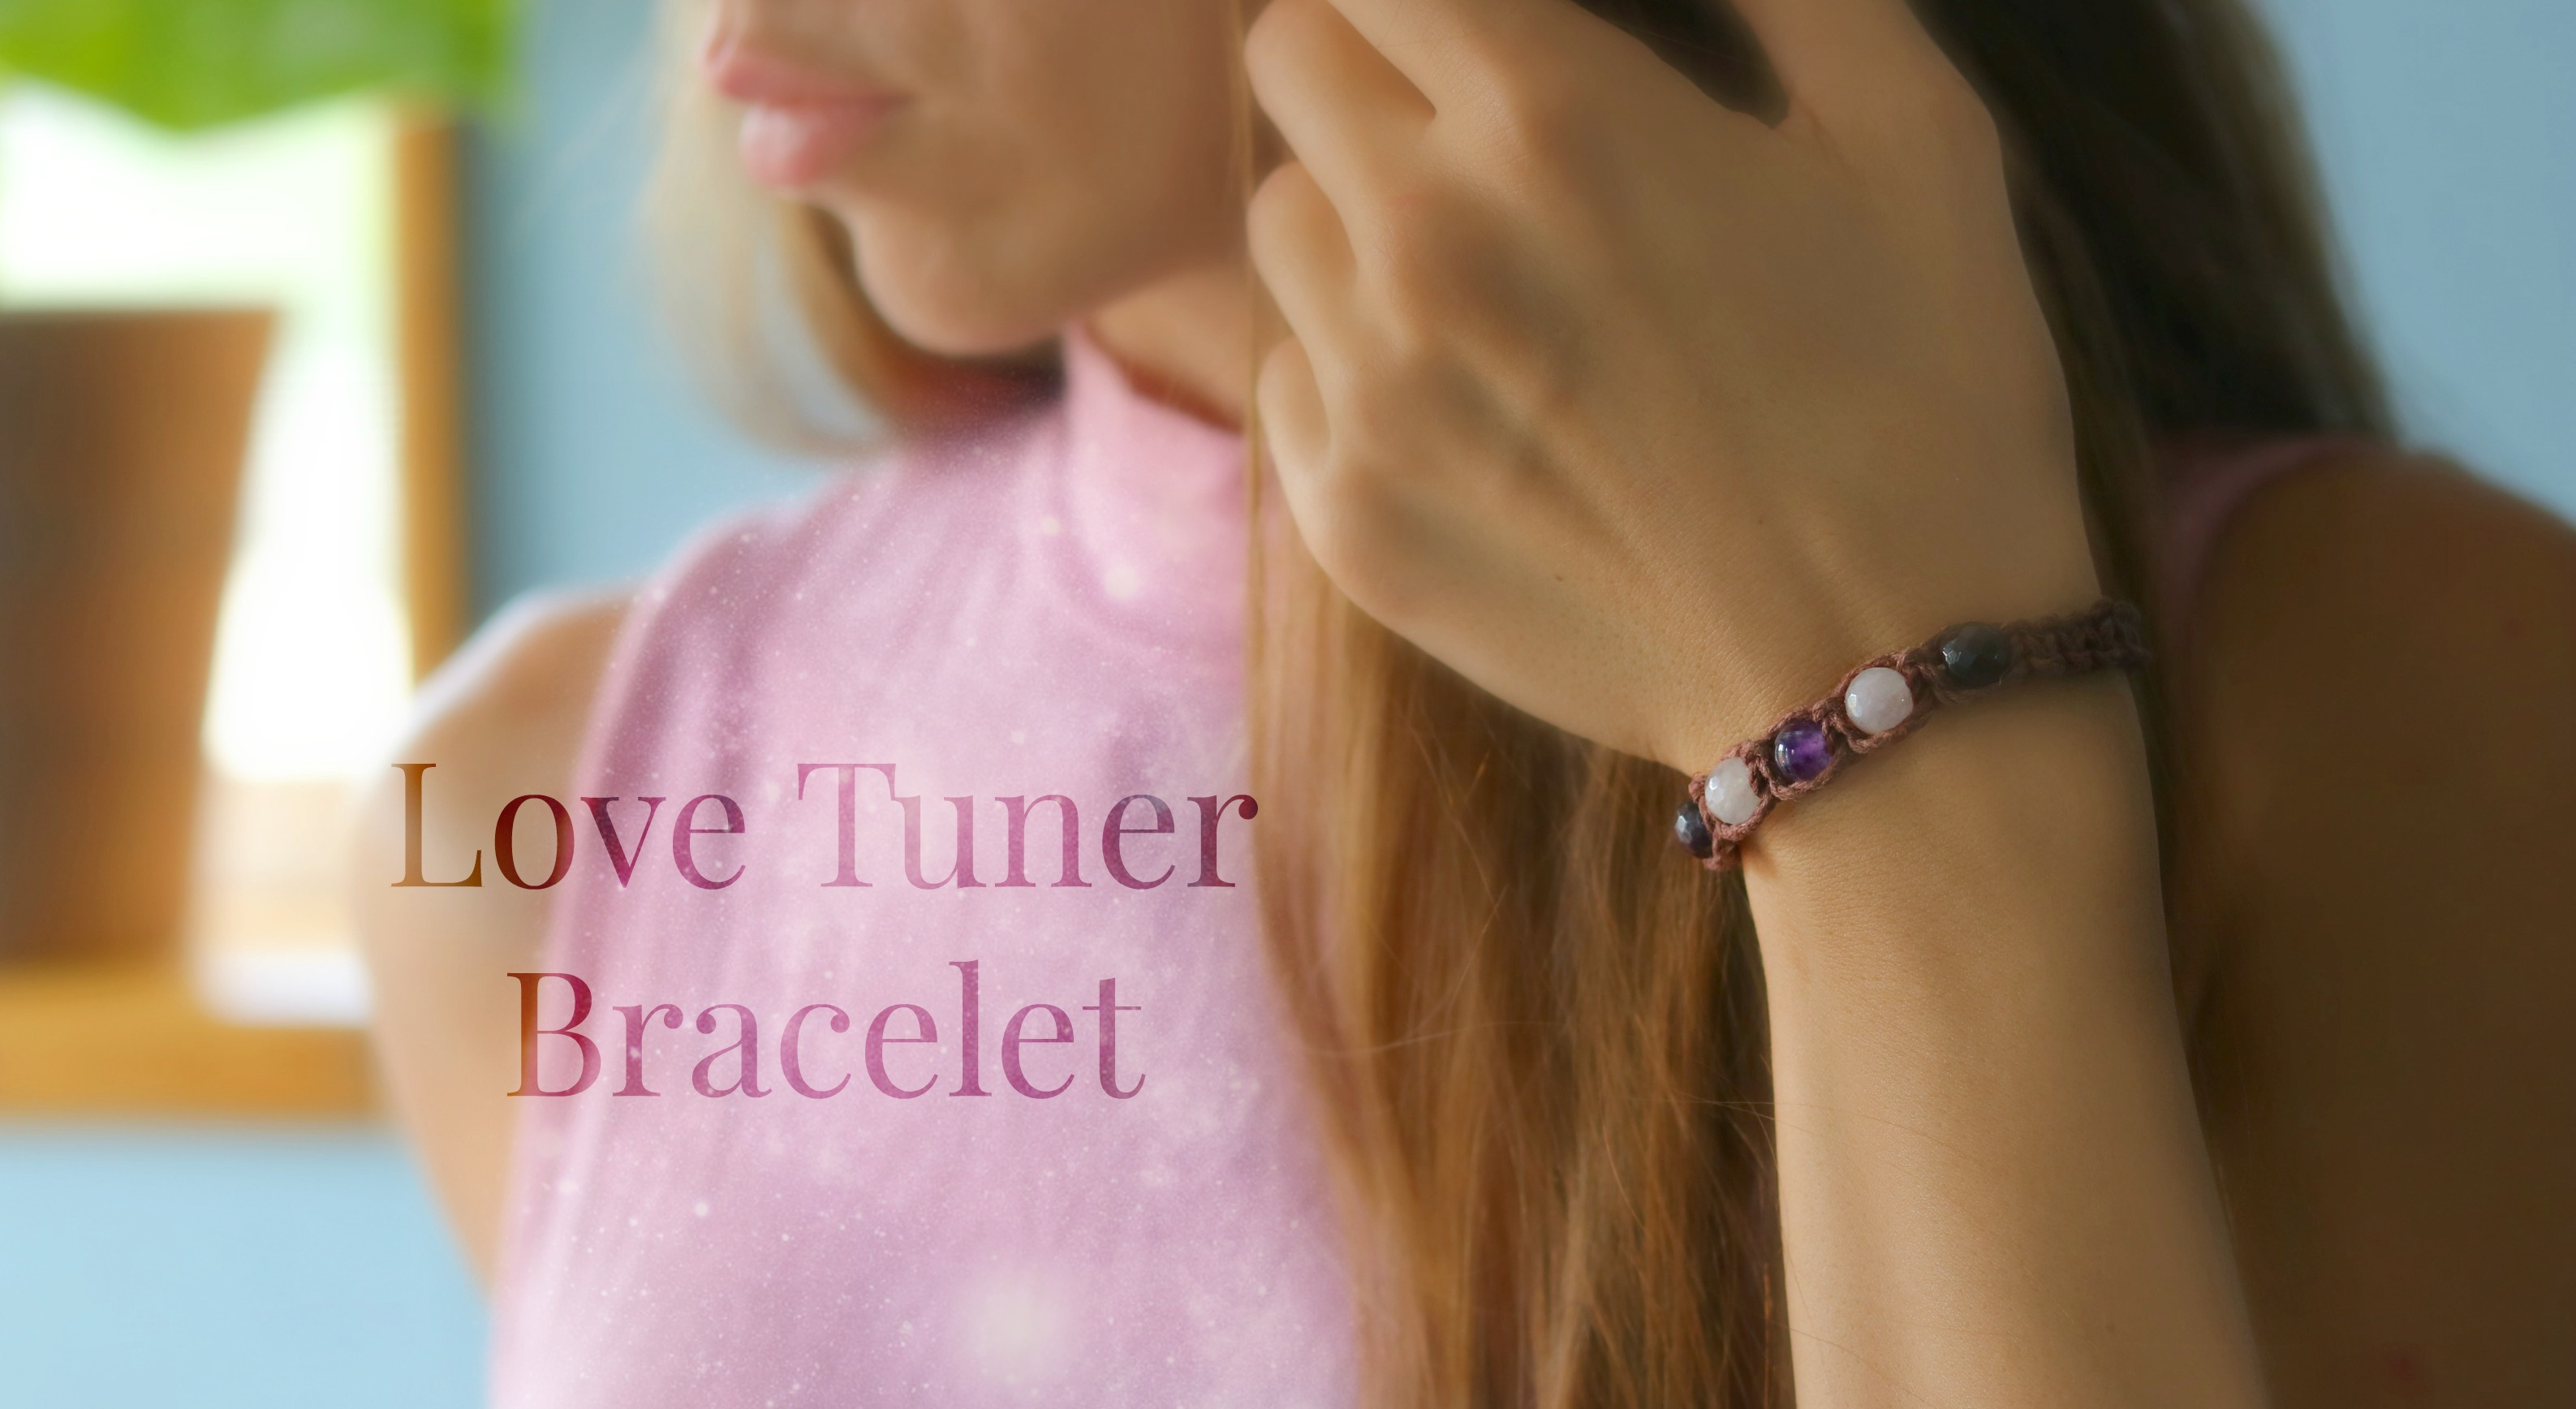 Why I Created the Love Tuner Bracelet